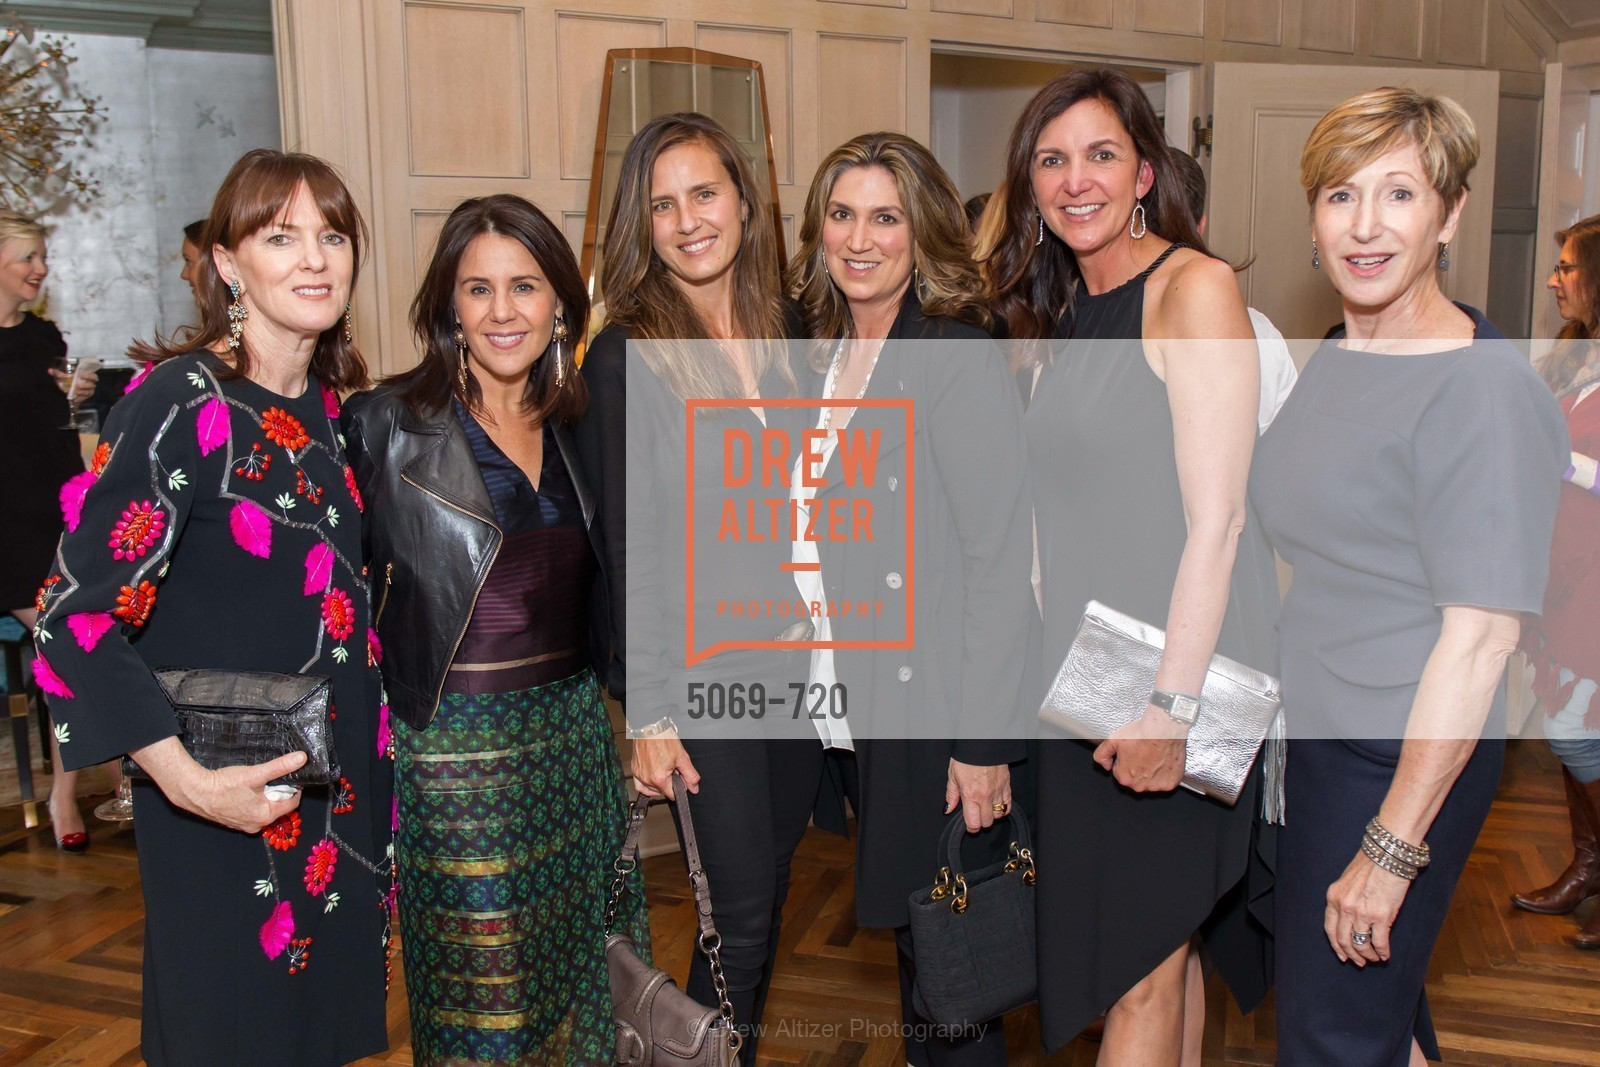 Allison Speer, Leslie Campoy, Becca Hydorn, Marissa Brandon, Jenna Feinberg, Ann Paolini, C MAGAZINE Editors Cocktail Party, US, May 13th, 2015